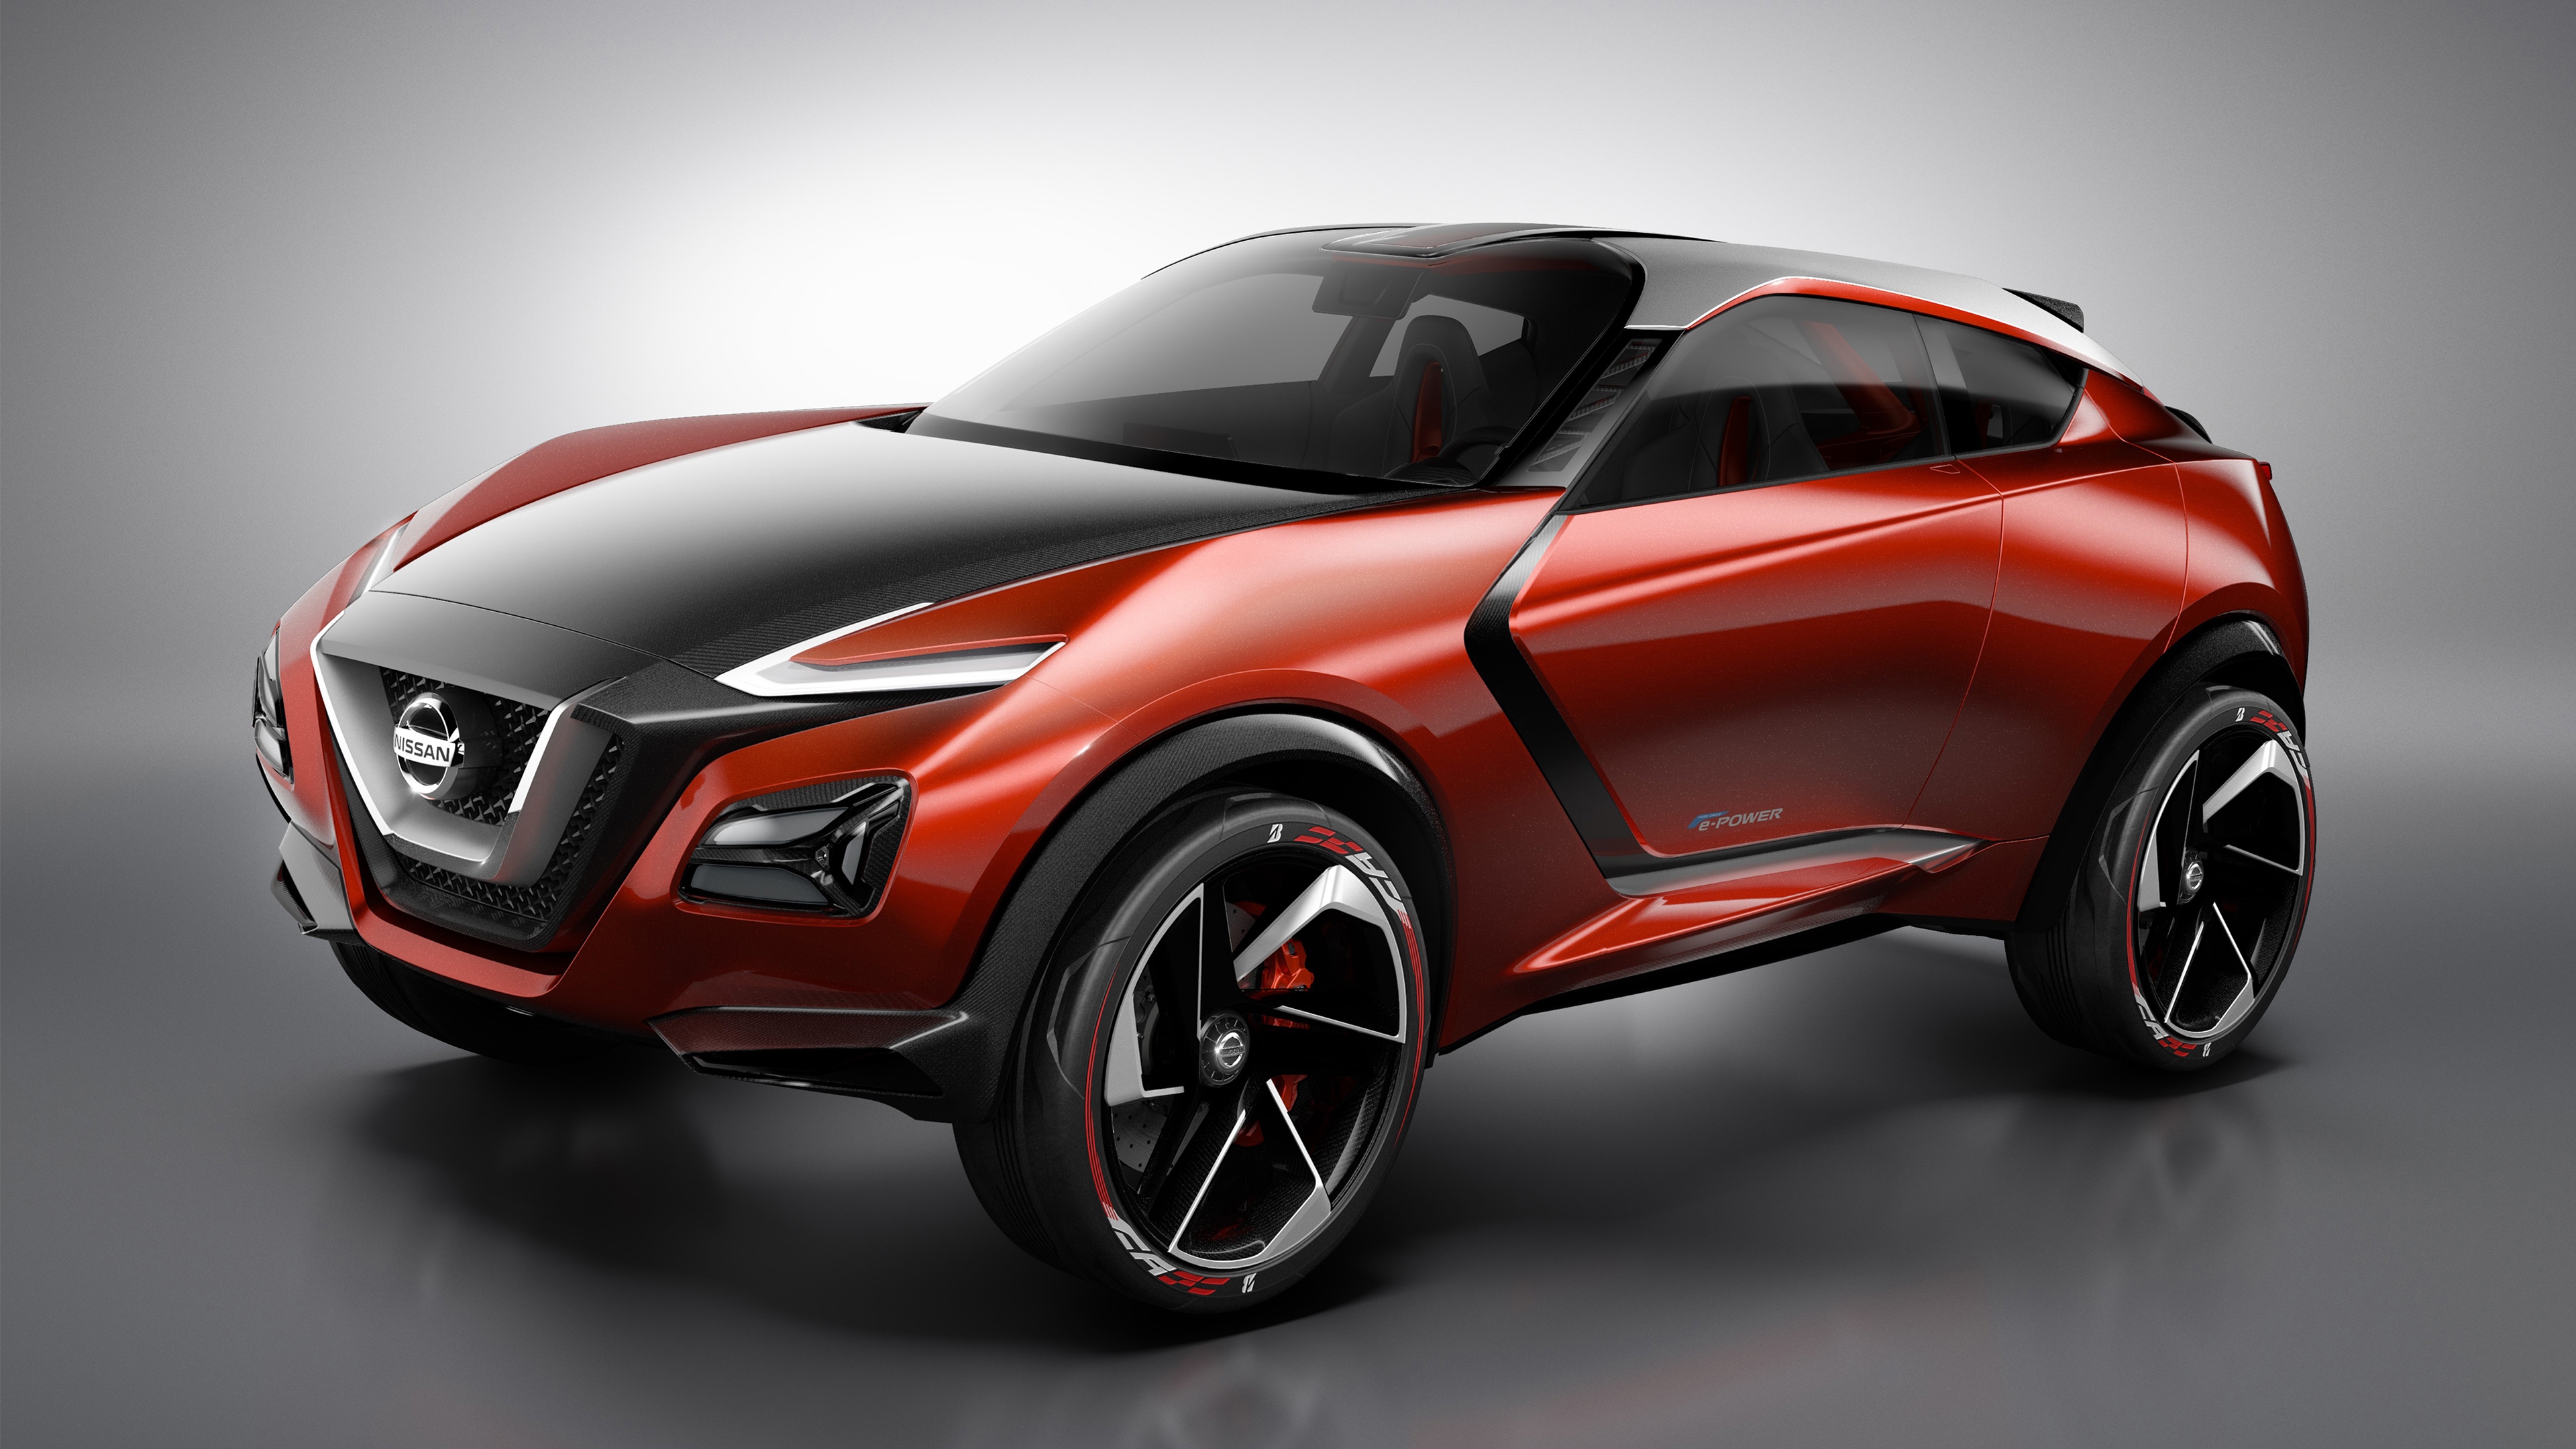 is in luxe concept replace already vehicle nissan a simpler s leaf electric ids very driving car an would green much not article its has self lineup system likely the it entertainment